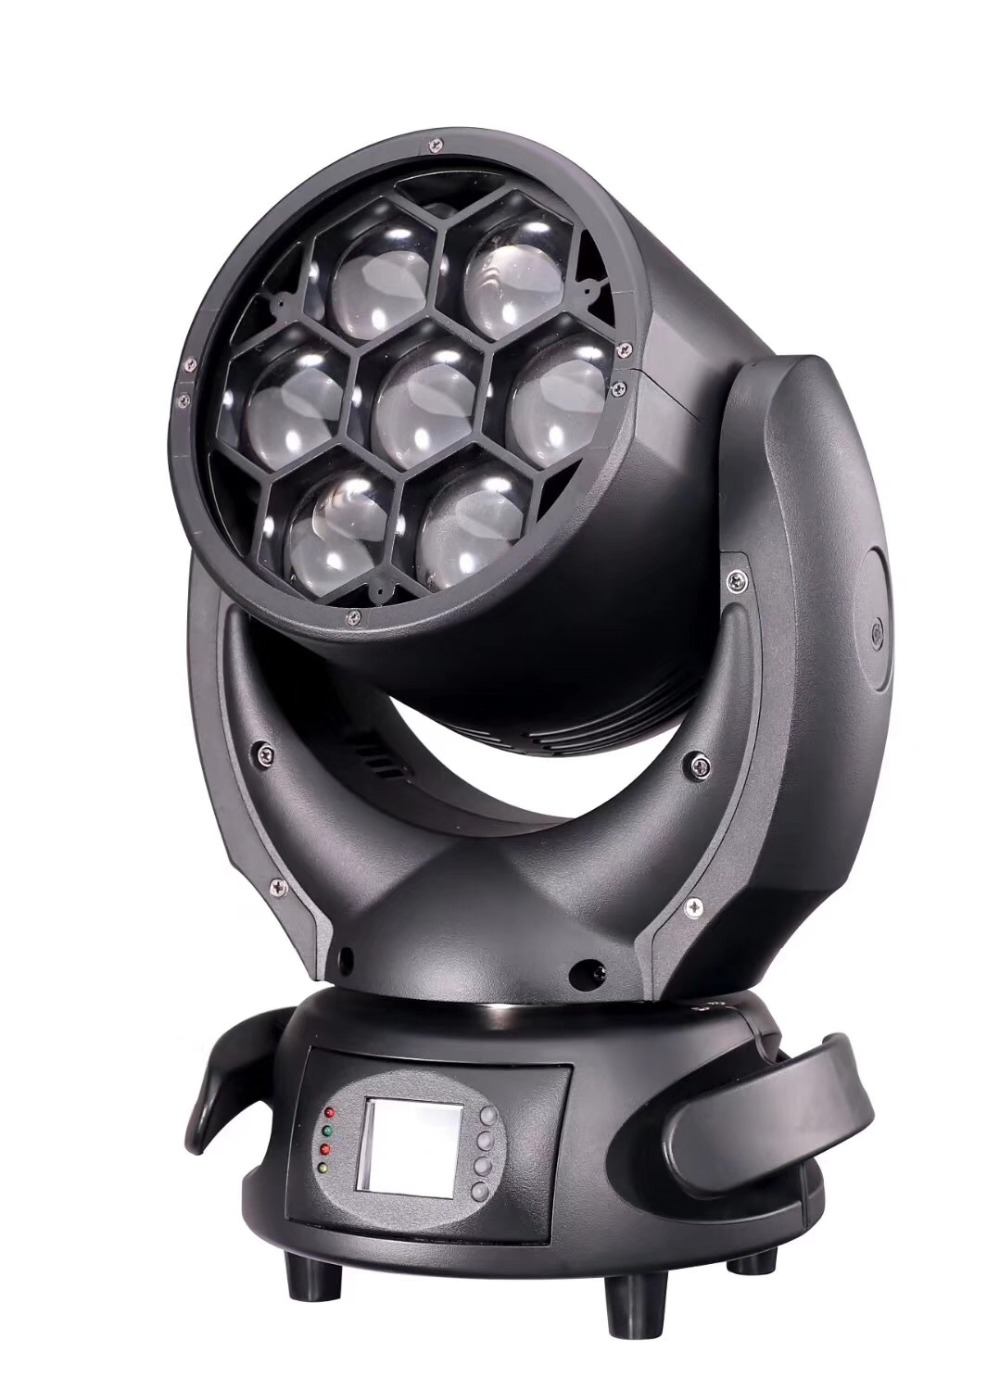 NEW 7*40W 4in1 RGBW ZOOM LED Moving Head Wash Light DJ Stage Lighting Disco LED Light Equipments For Party Club 7R BEAM